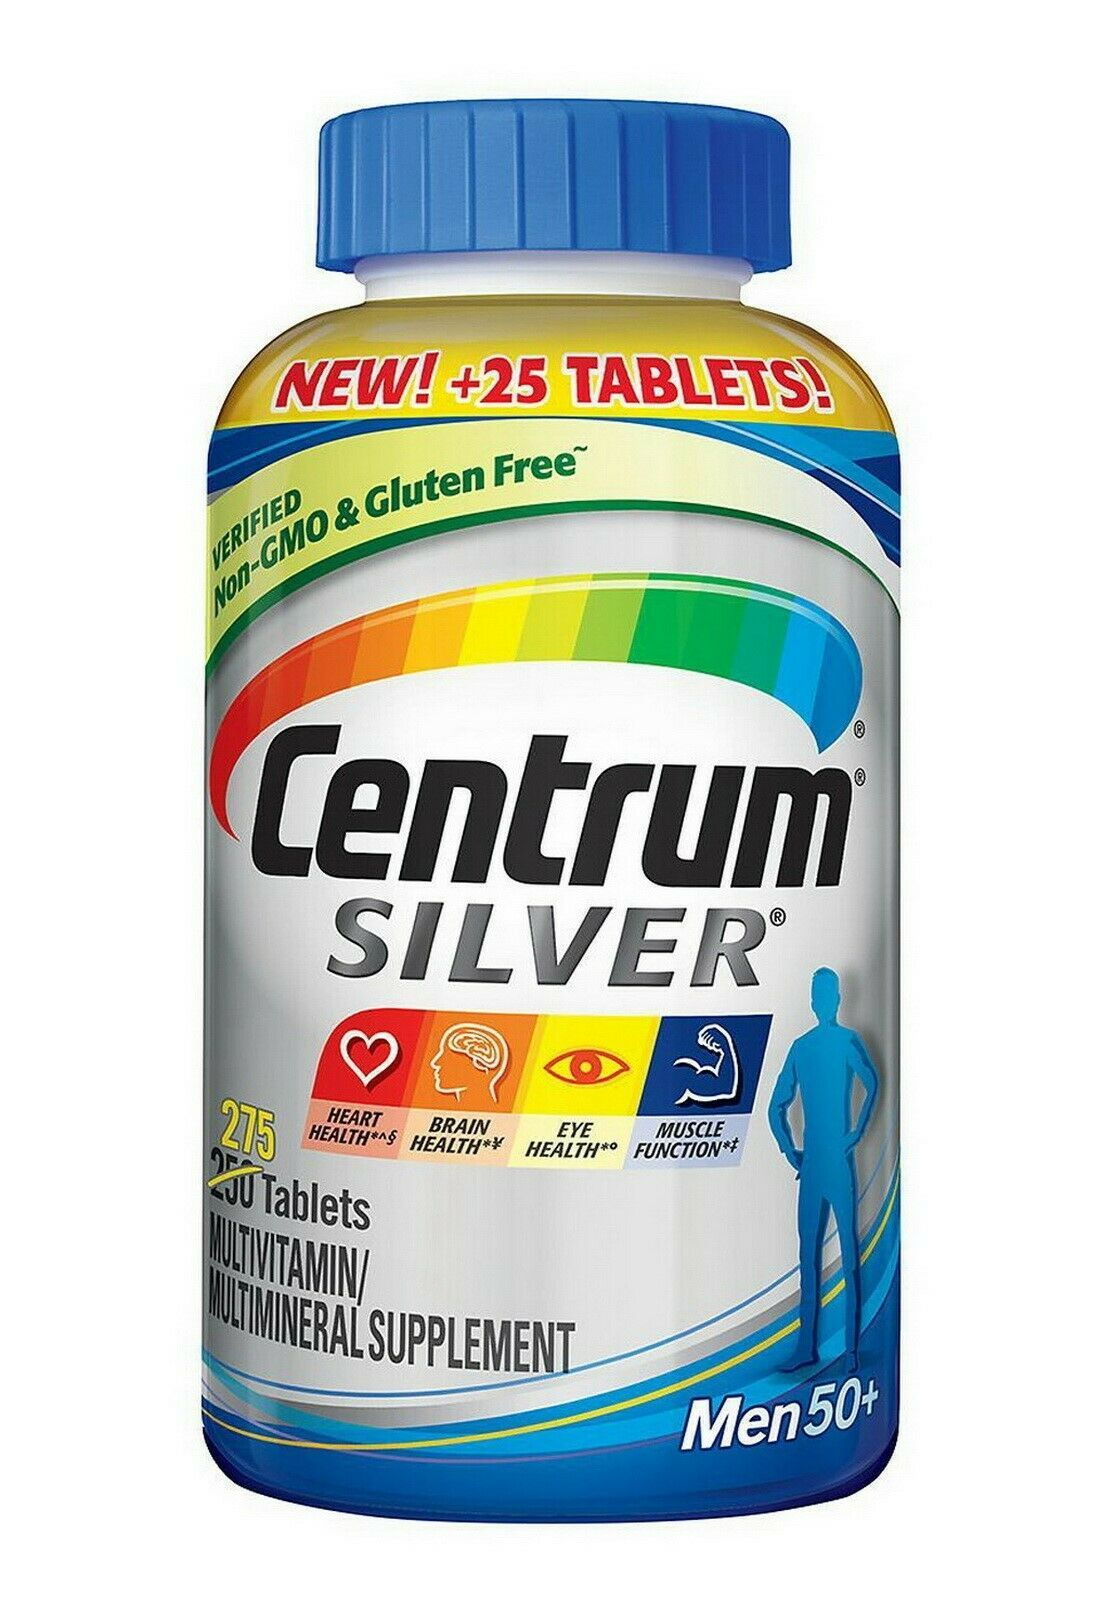 Primary image for 275 Tabs Centrum Silver Men 50+ Multivitamin Multimineral Supplement Vitamin D3.